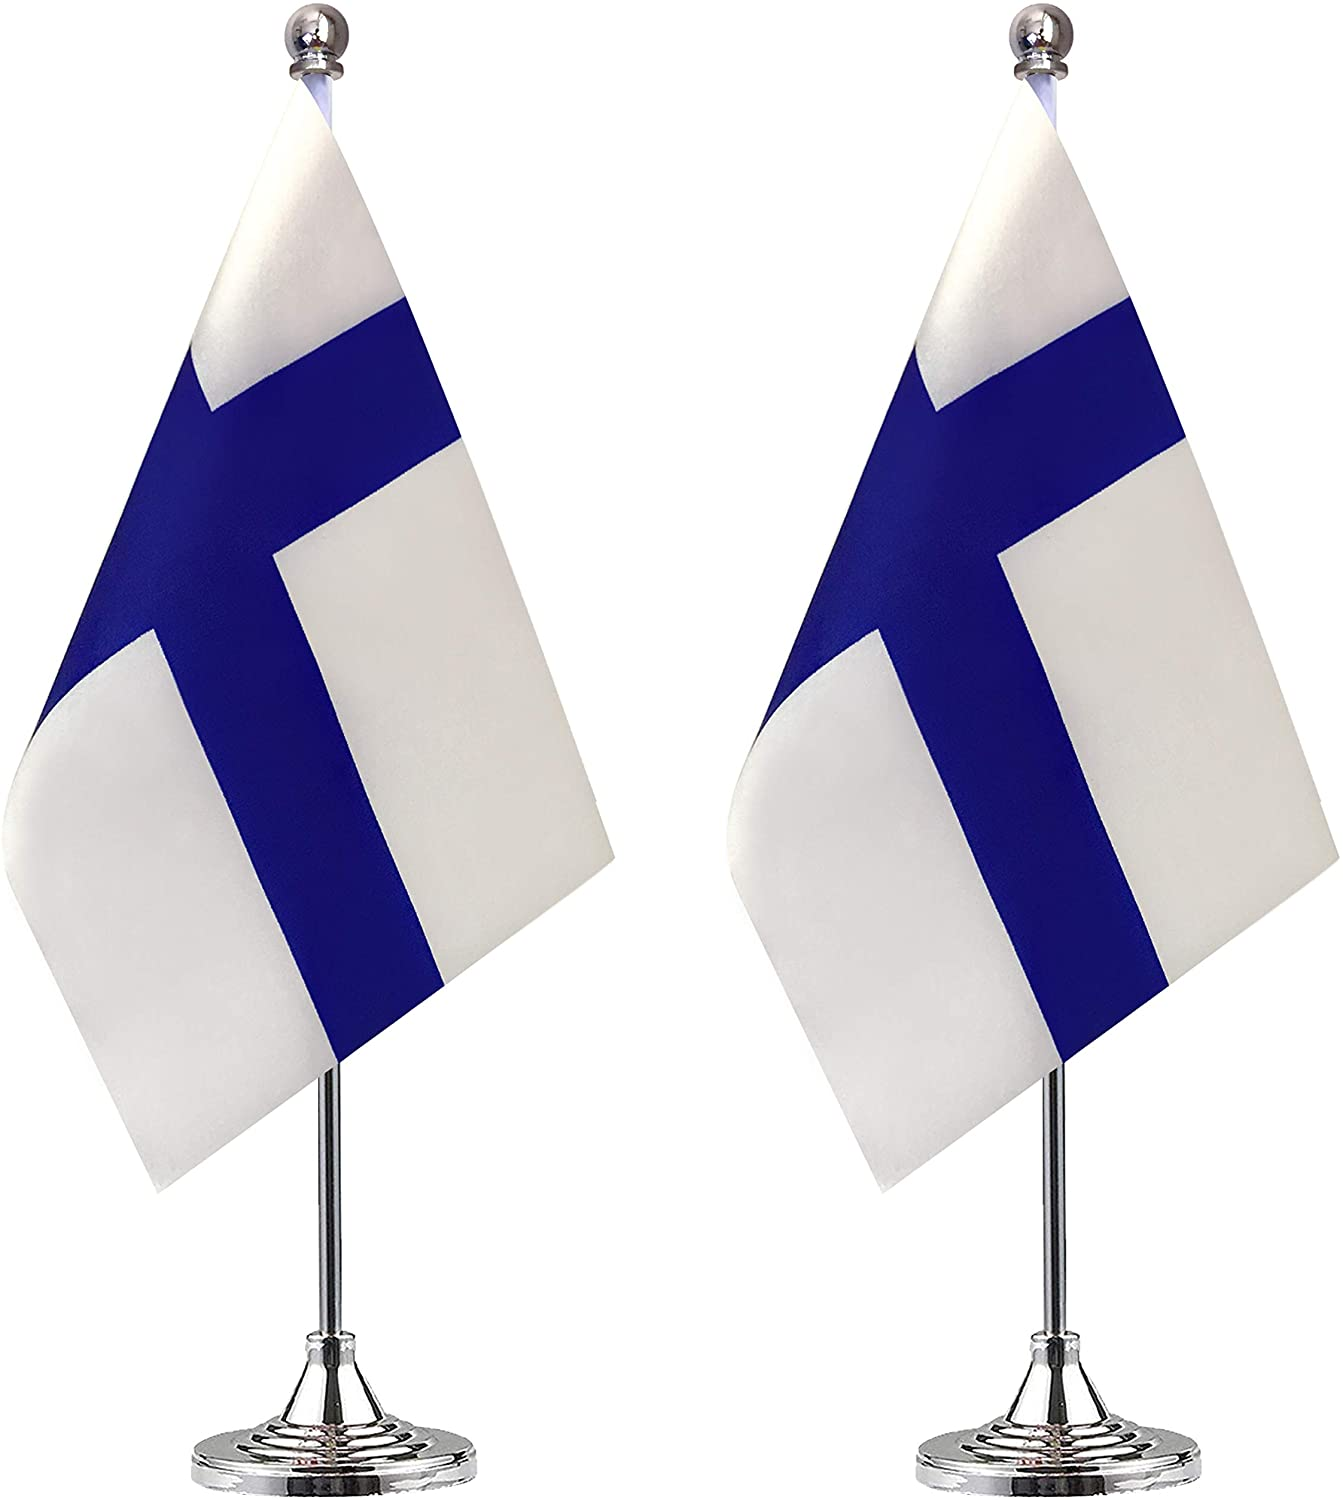 Finland Desk Flag Small Mini Finnish Office Table Flag with Stand Base,Finnish Themed Party Decorations Celebration Event,2 Pack